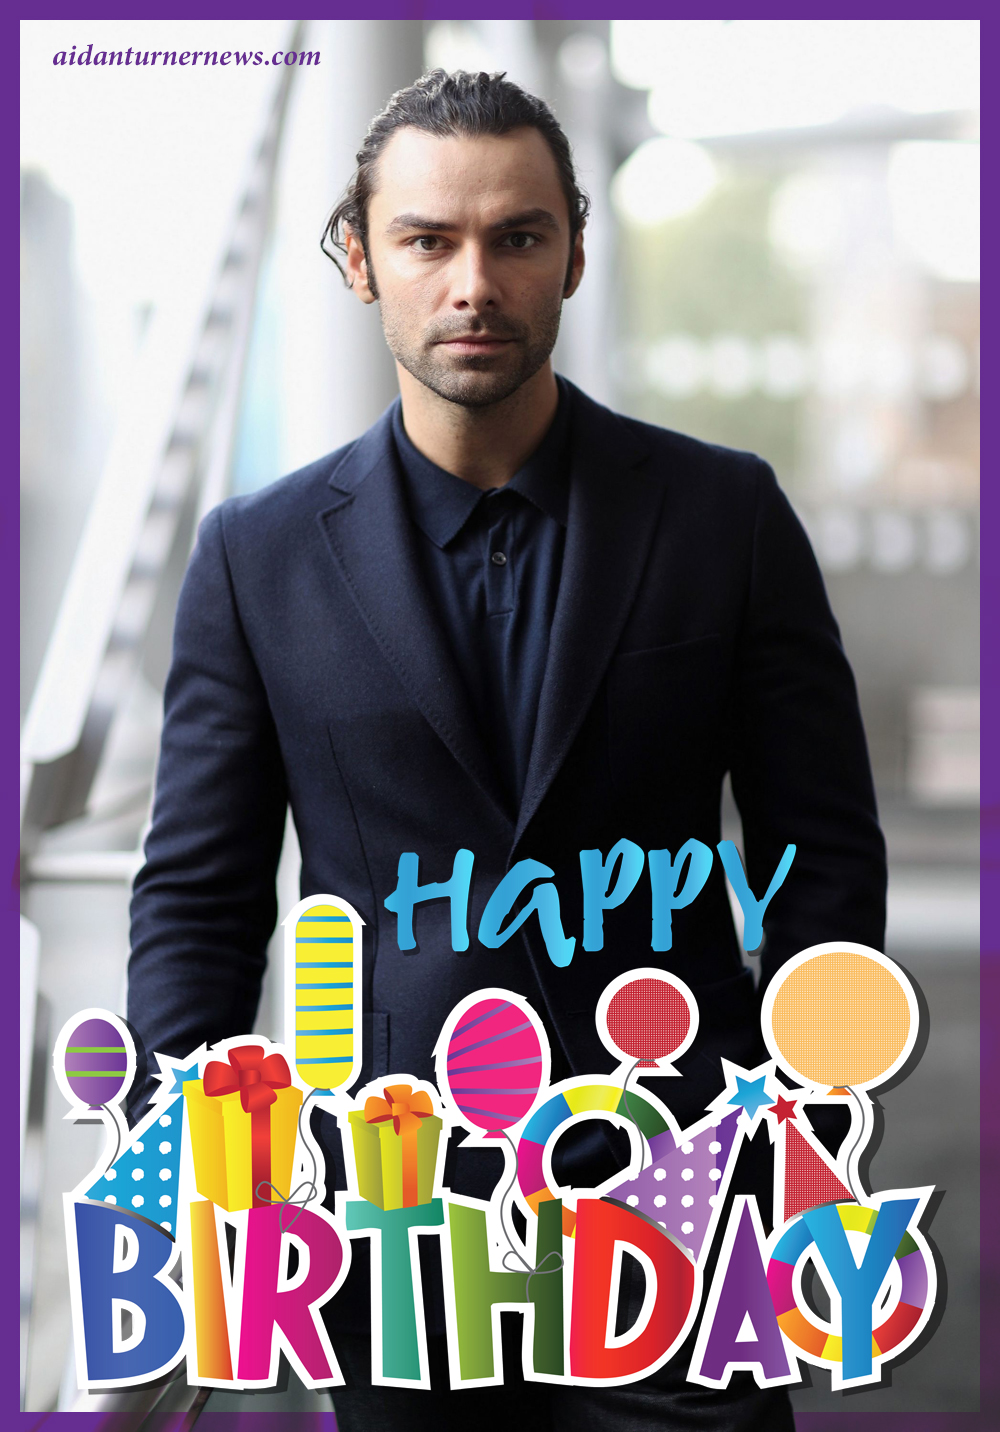 Aidan Turner Birthday